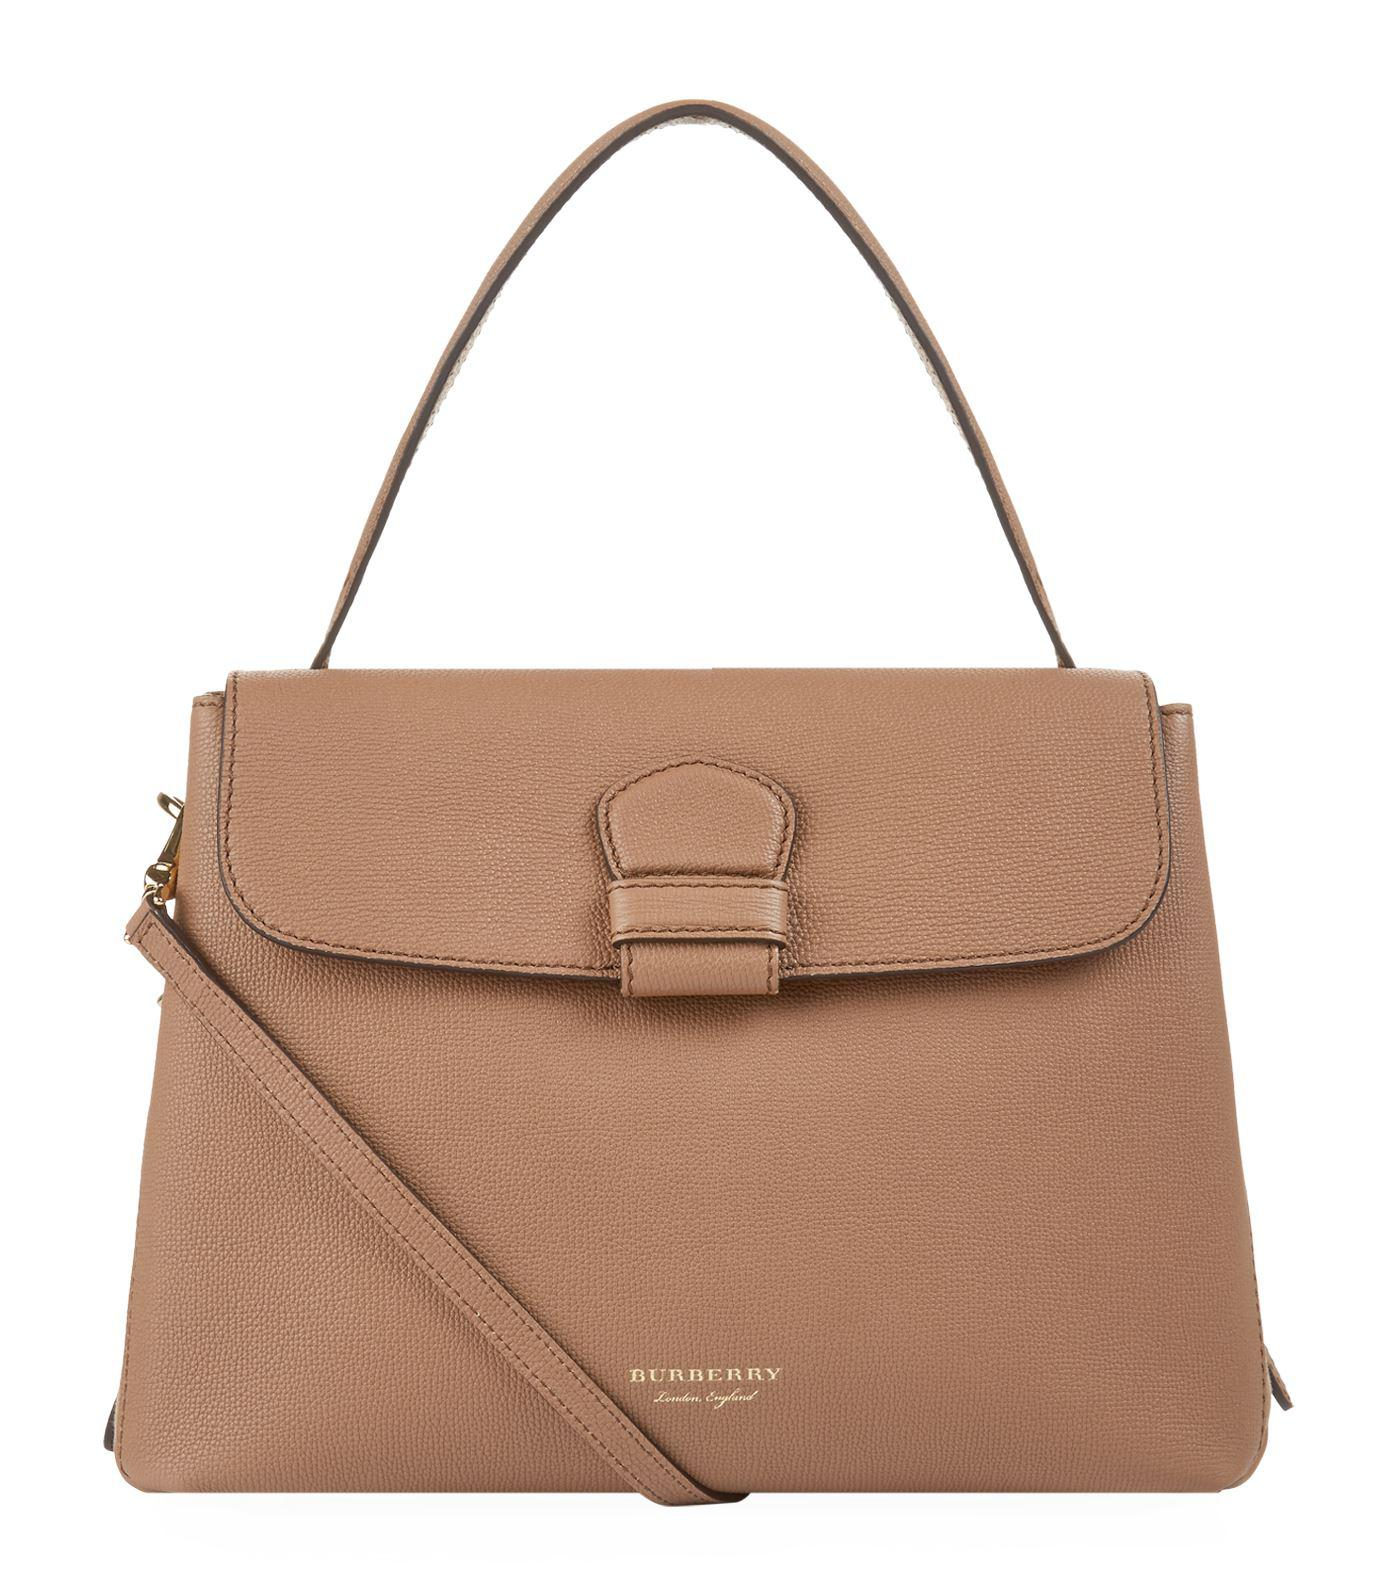 Burberry Leather Medium Camberley Tote in Beige (Natural) - Lyst